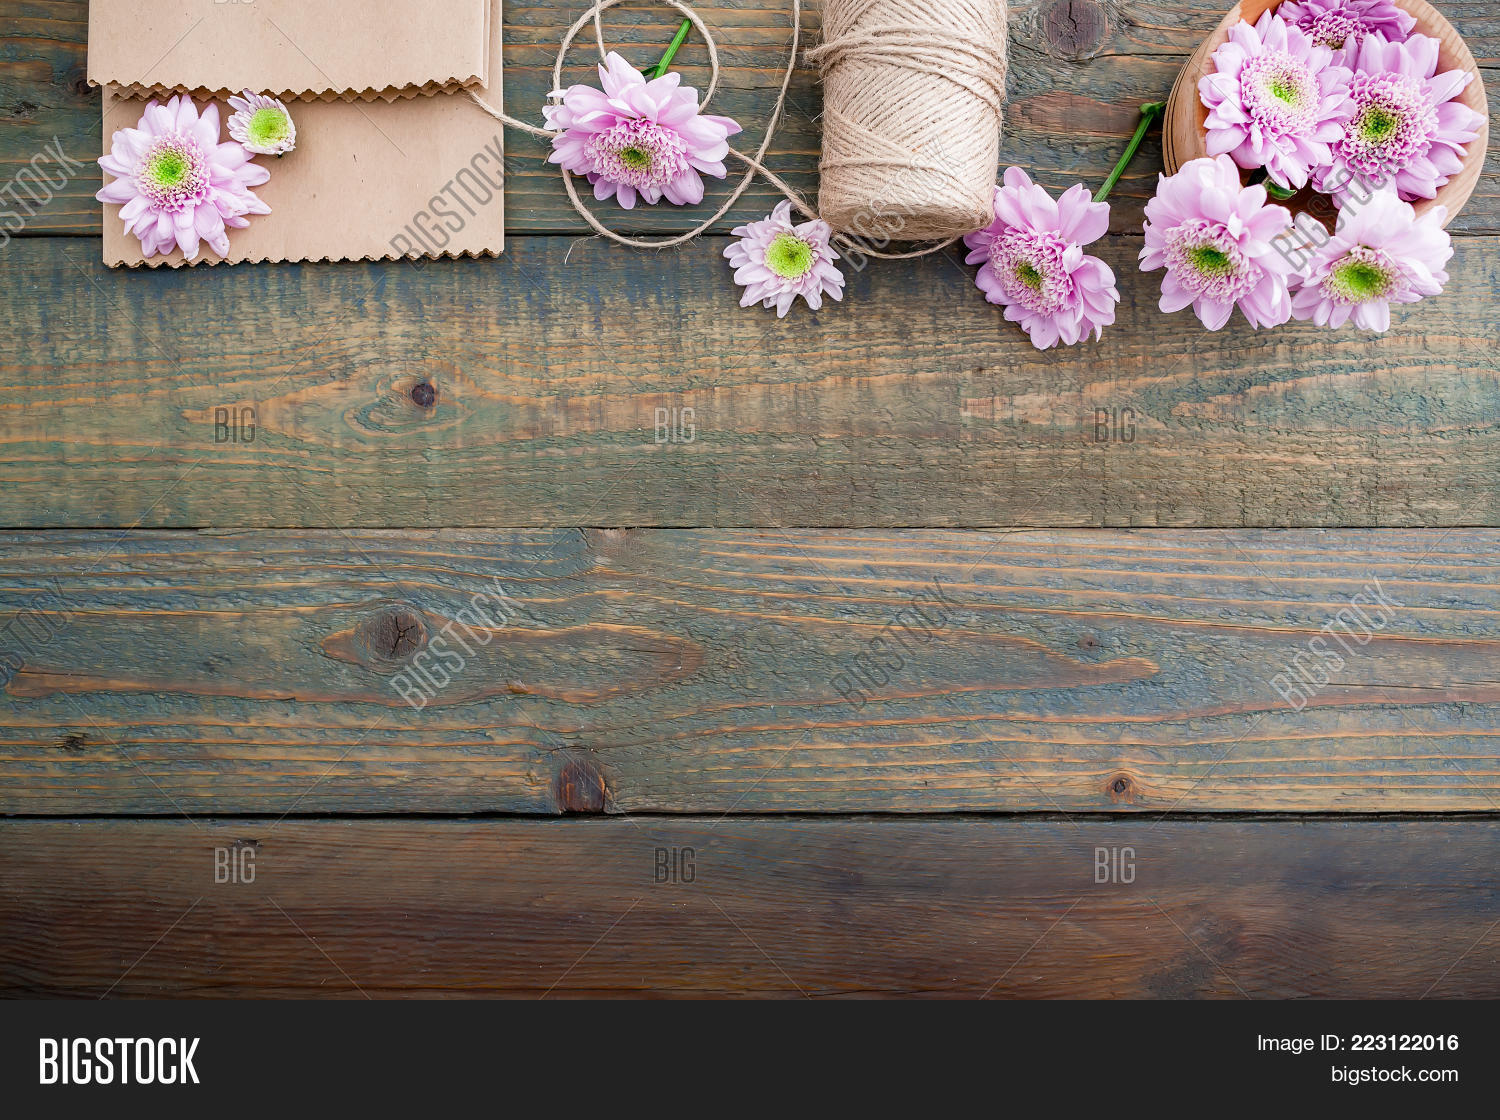 Pink Flowers Twine Image Photo Free Trial Bigstock